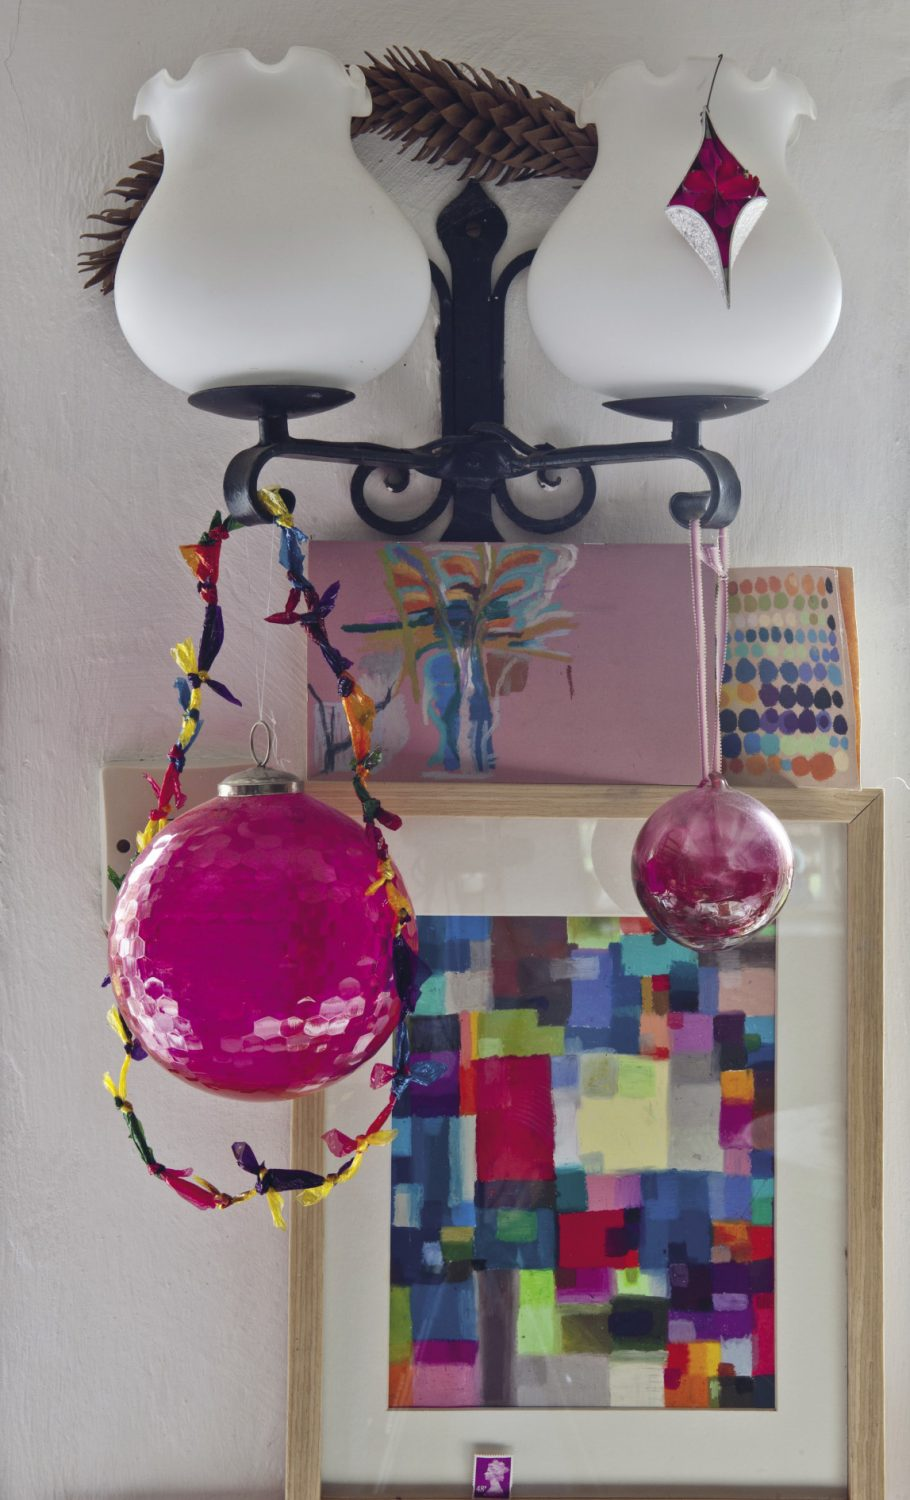 Designs and paintings created by Nancy nestle between three windows which take up most of the wall above her desk. Each one is saturated with carefully chosen colours